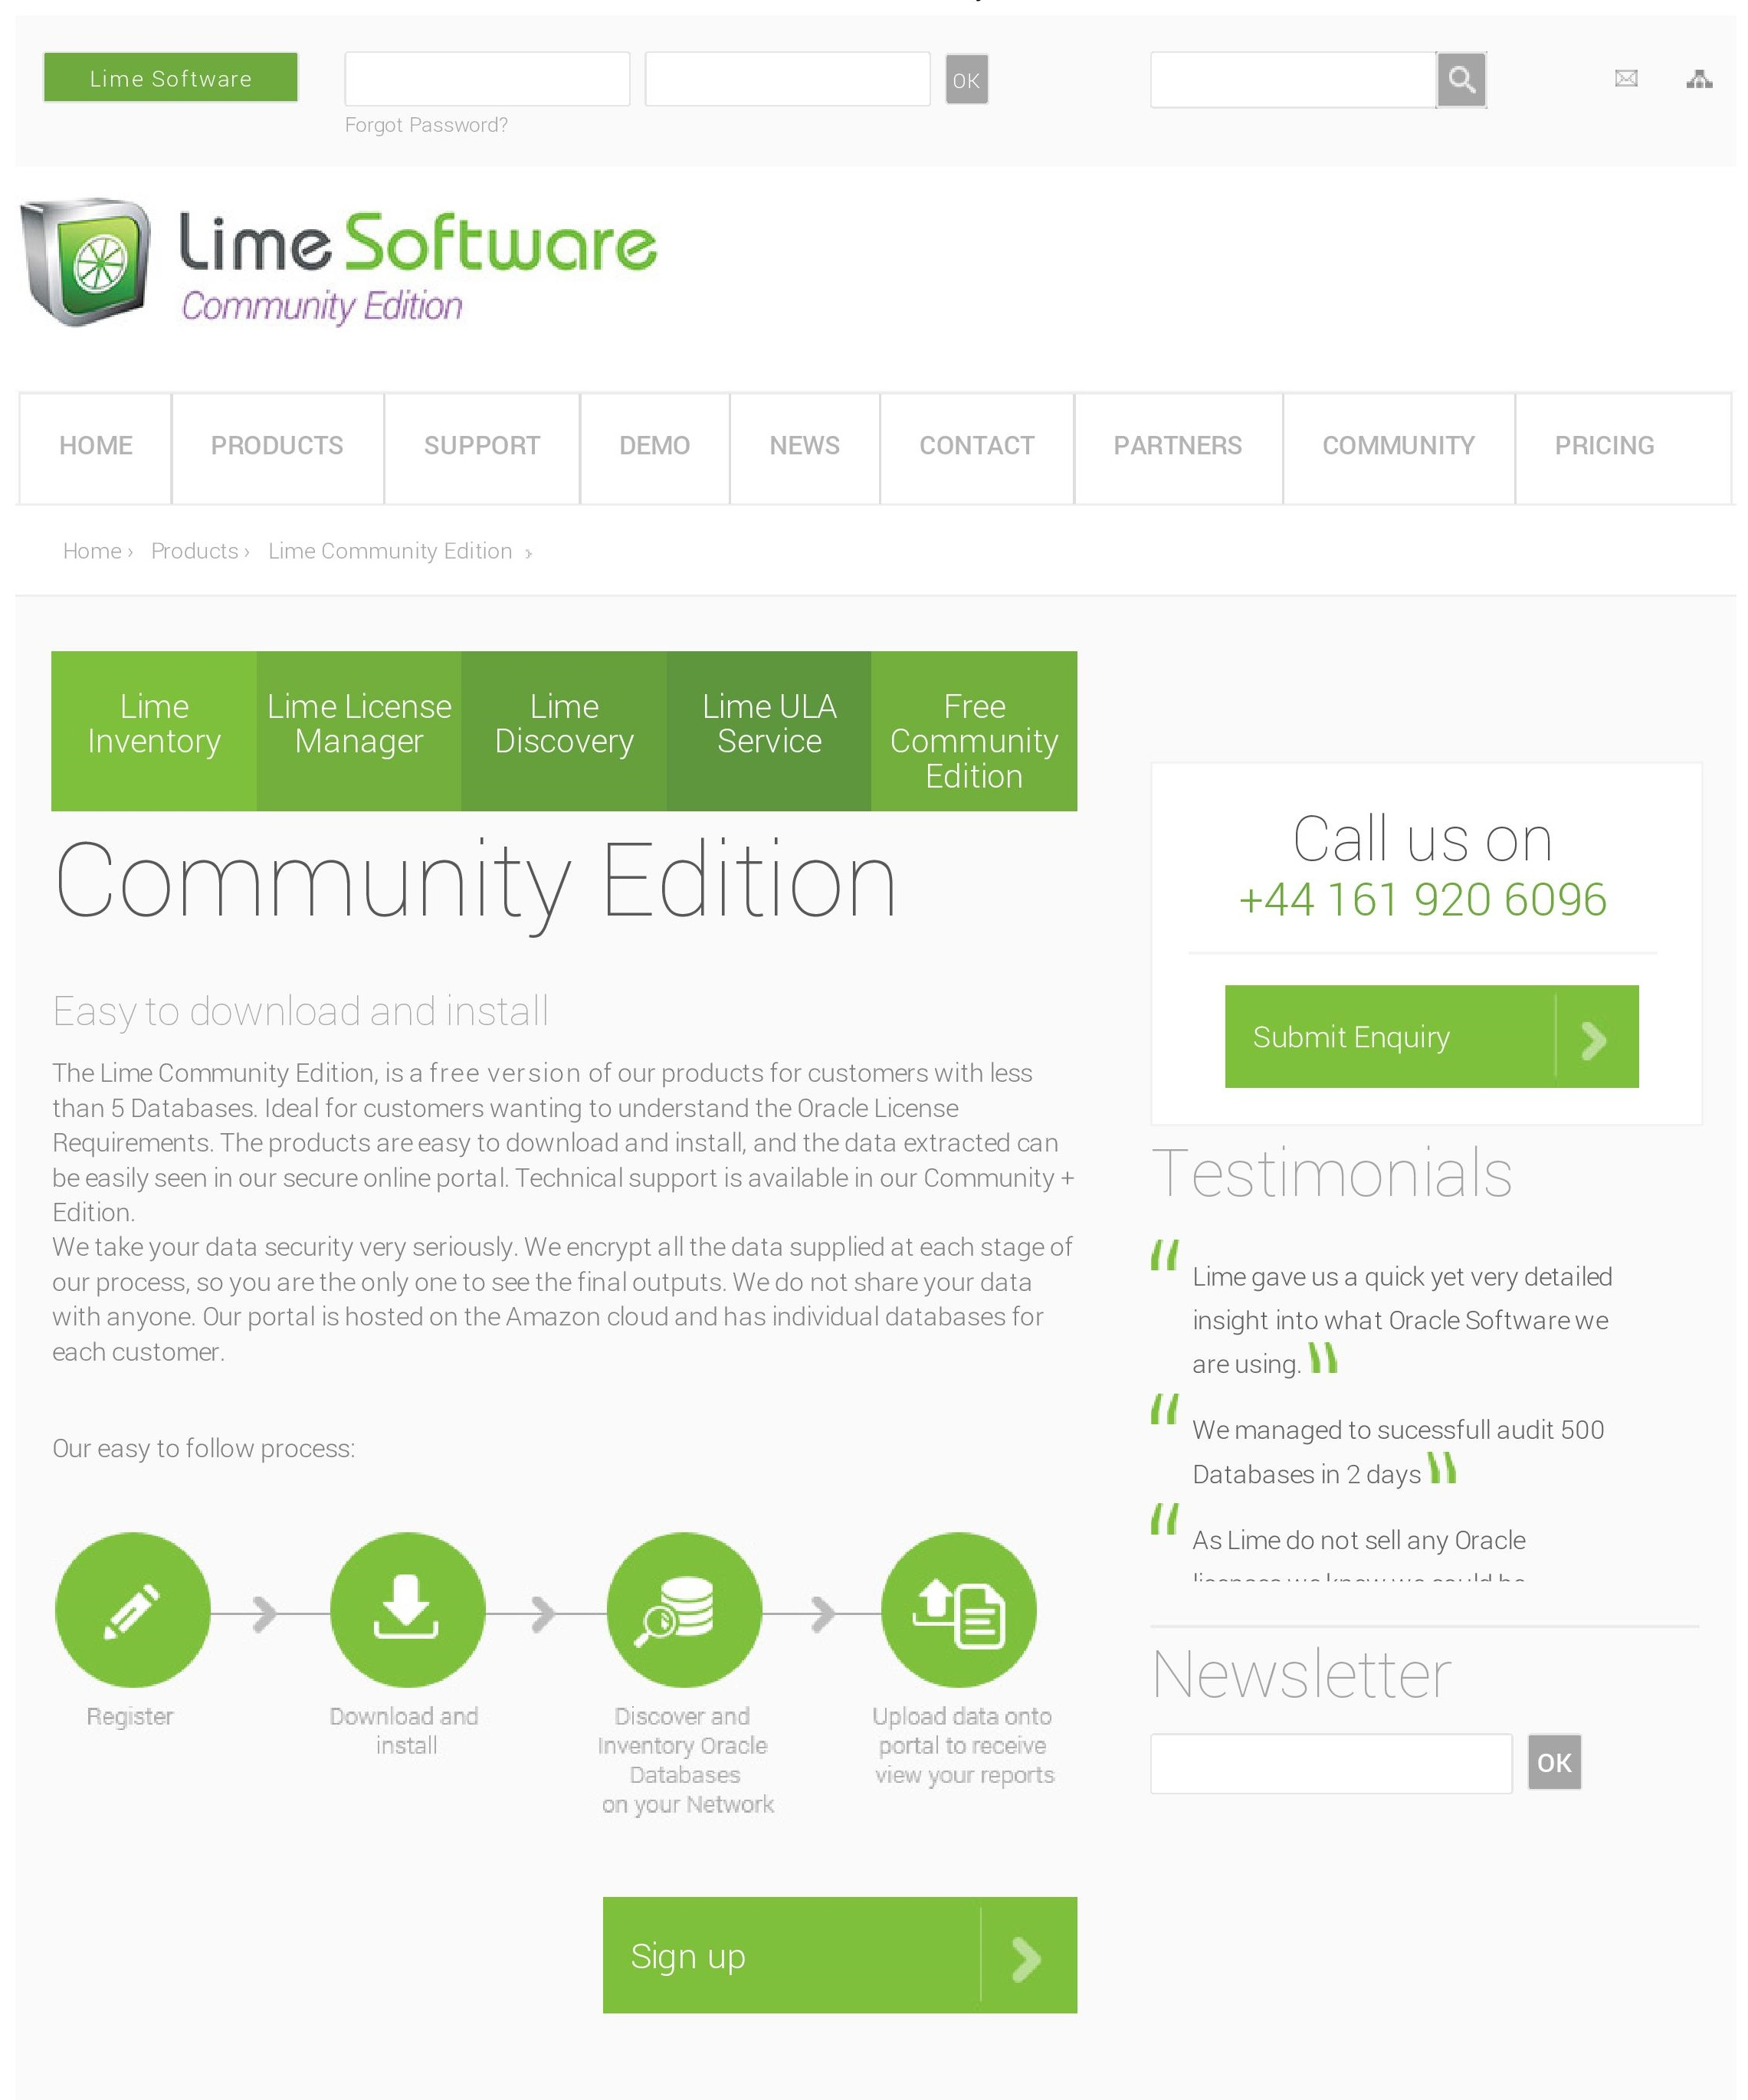 Lime Demo - Lime Software - Community Edition